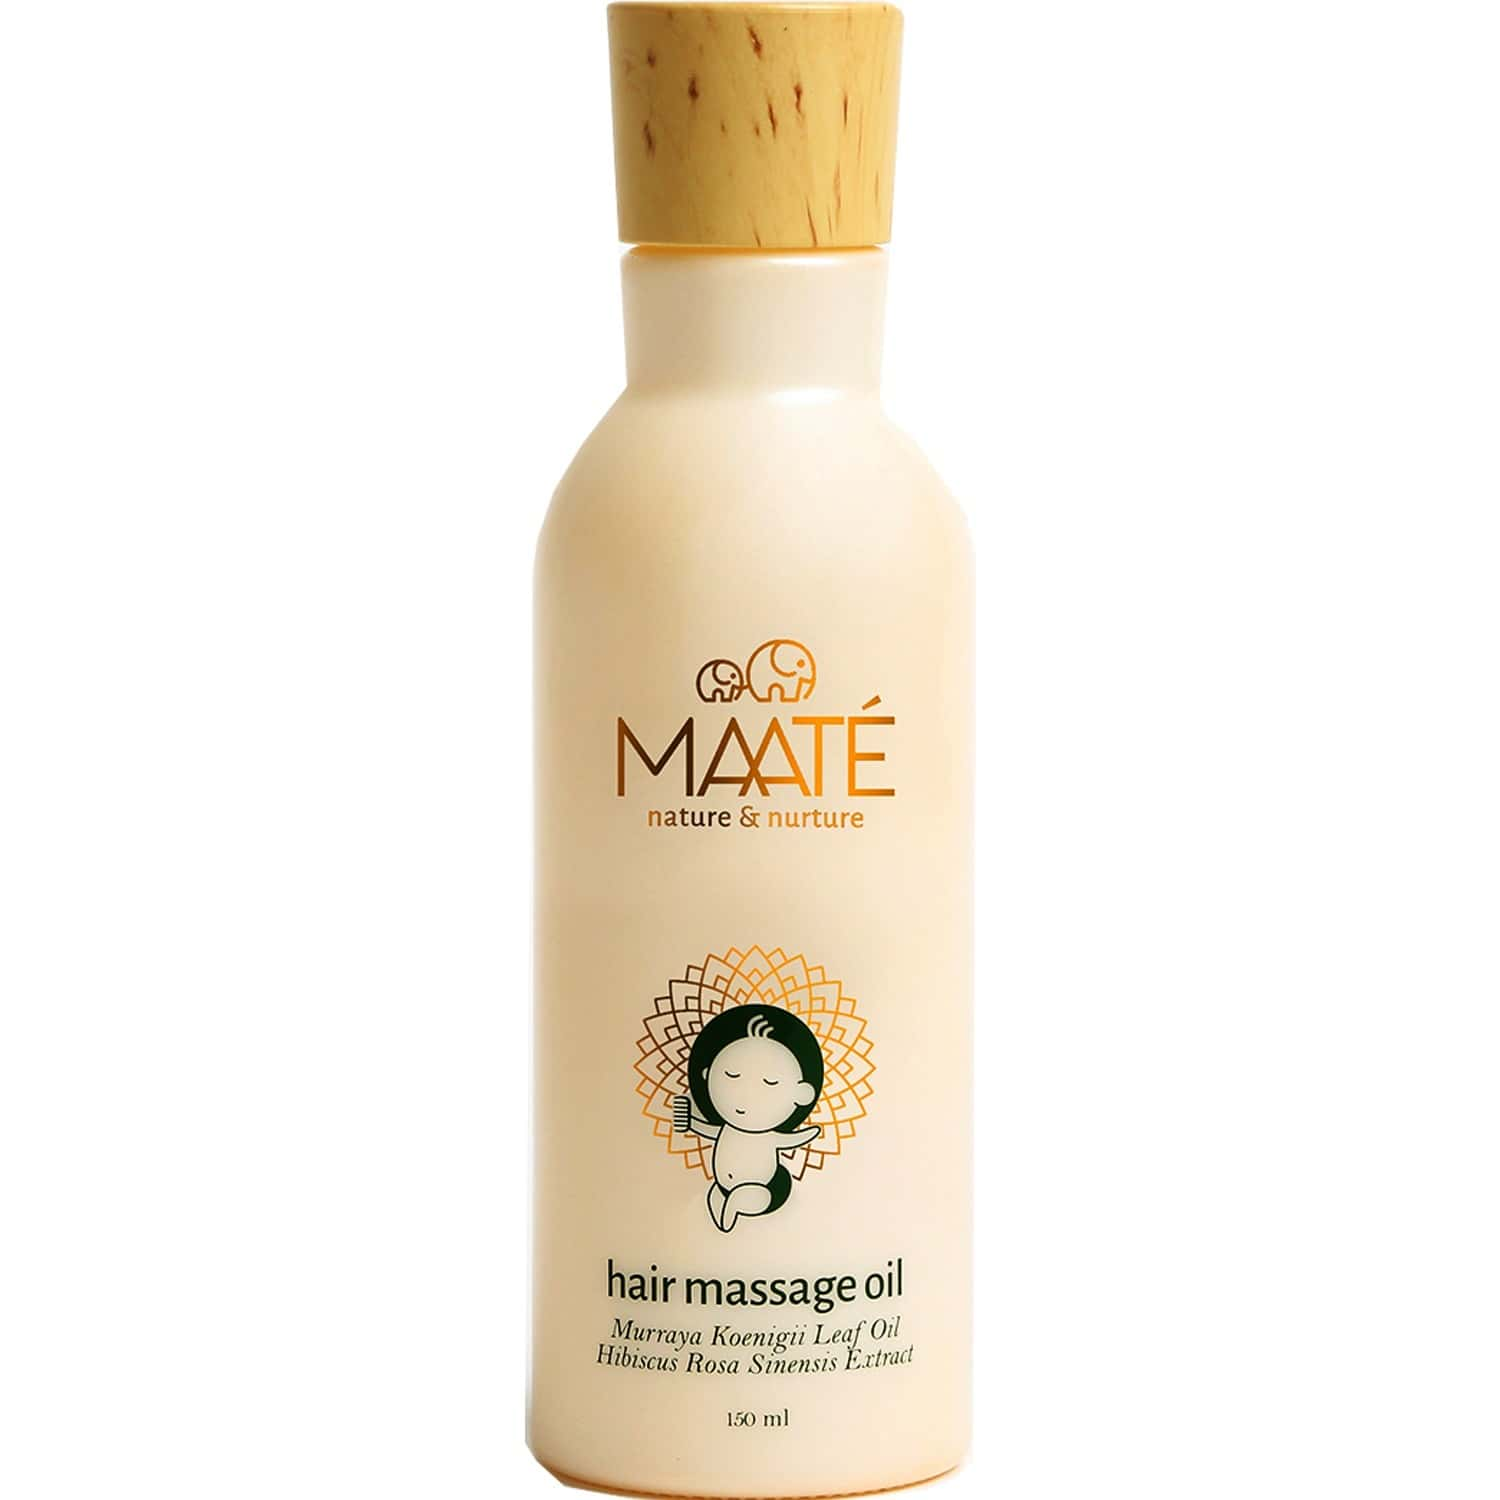 Maate Baby Hair Massage Oil Baby Hair Growth And Scalp Conditioning -150ml